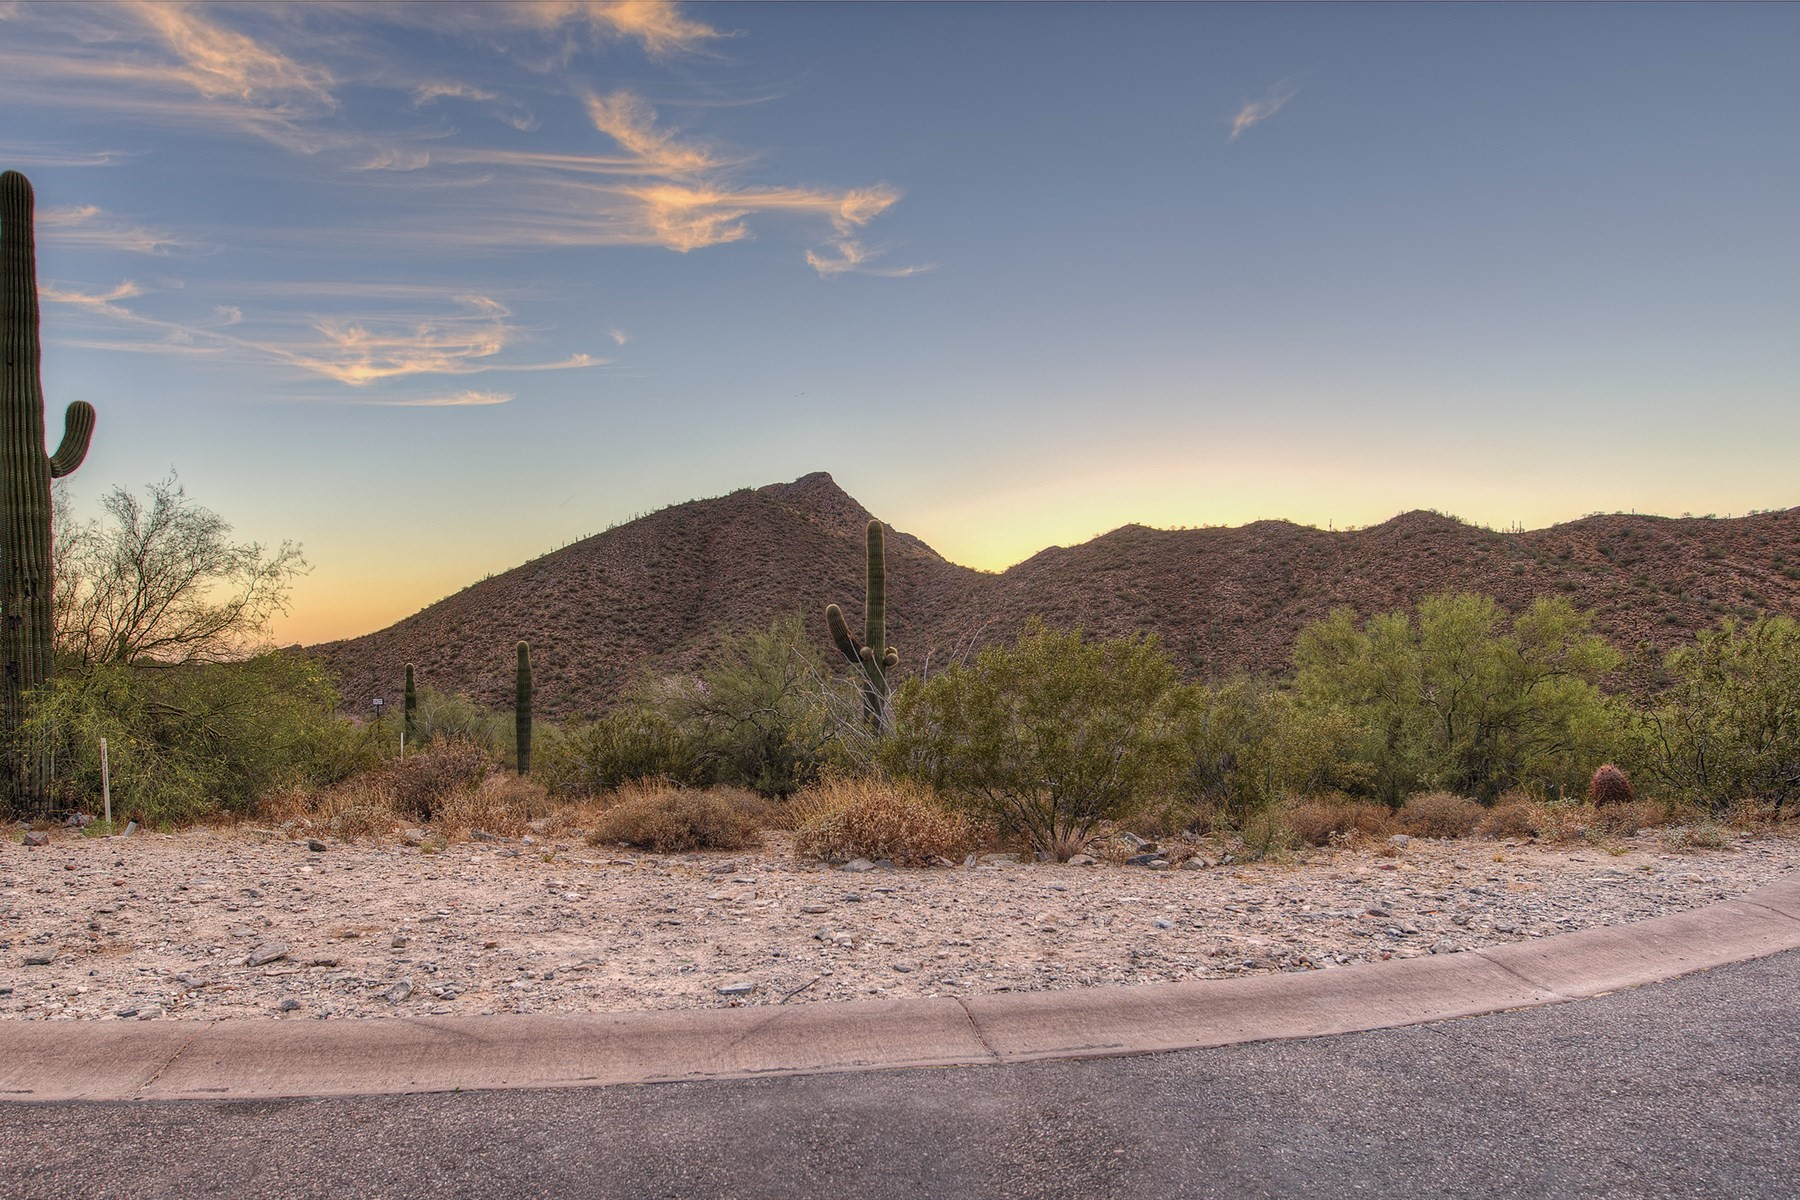 Terreno por un Venta en Easy-build private lot with picturesque canyon views 21524 N 110th Pl #1827 Scottsdale, Arizona, 85255 Estados Unidos